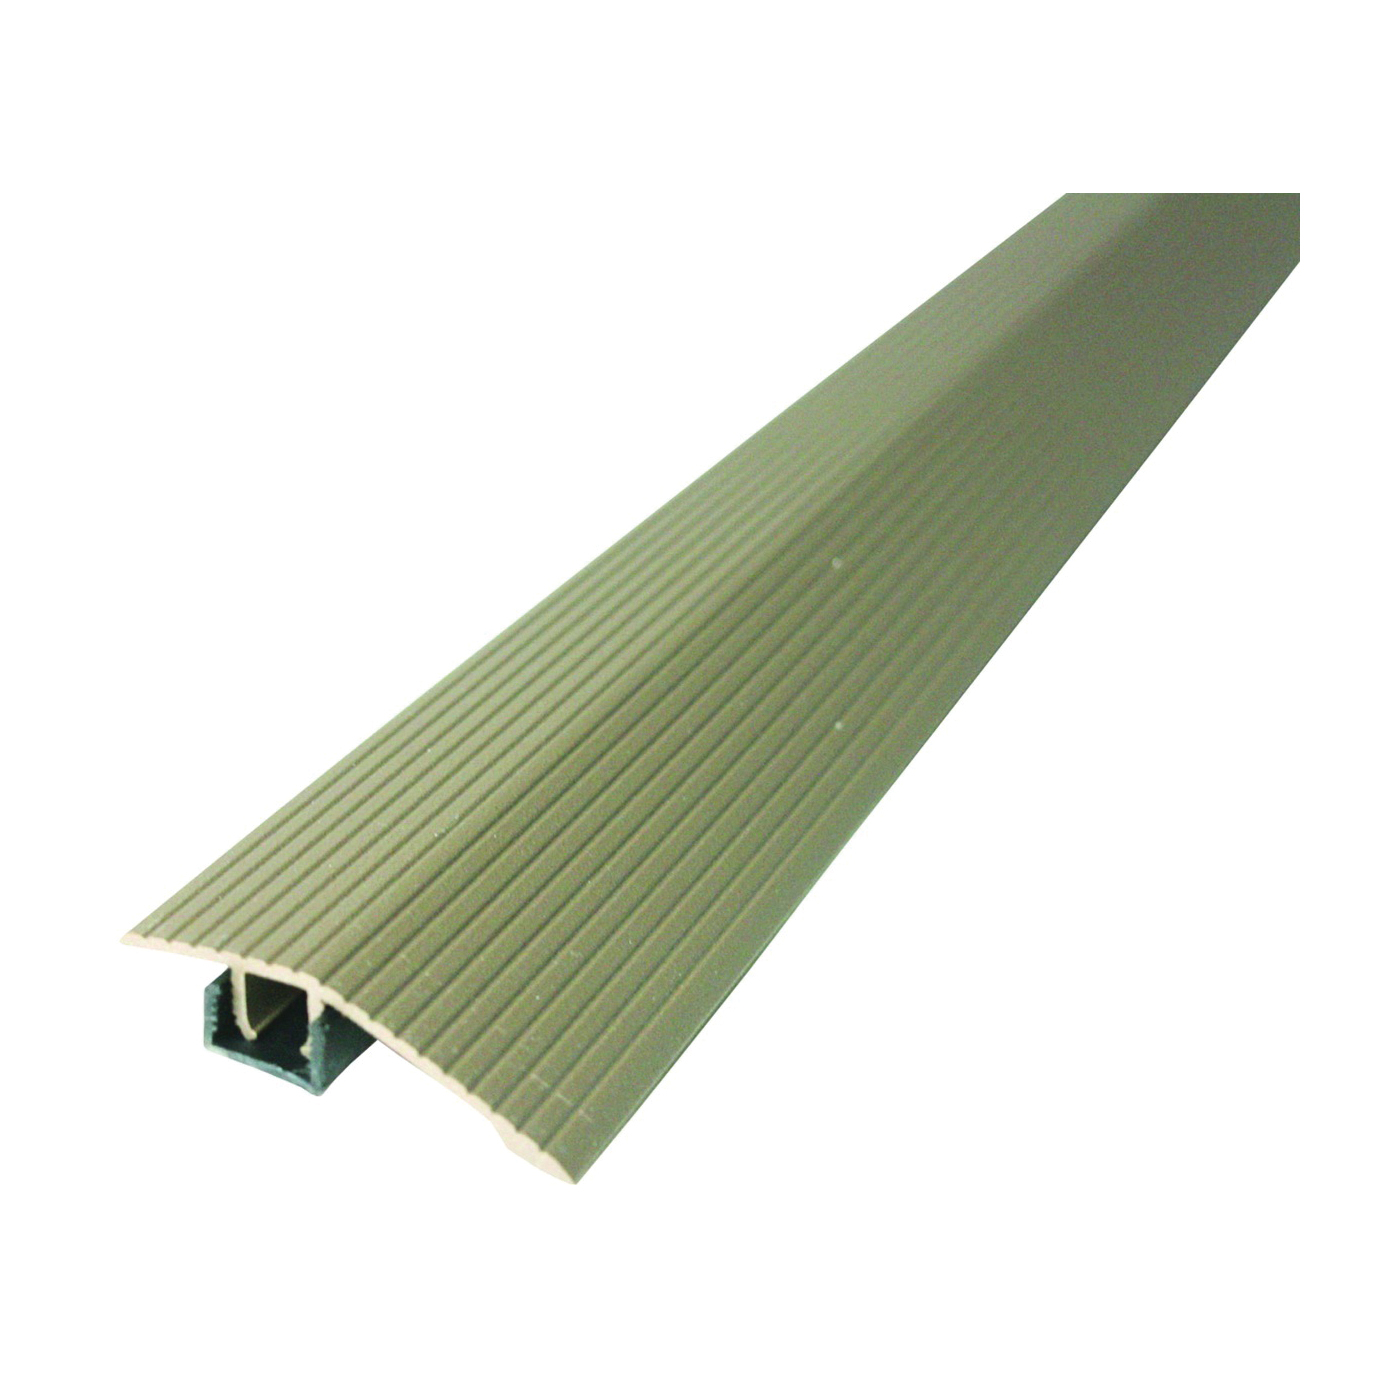 Picture of M-D 43319 Seam Binder, 36 in L, 1-13/16 in W, Fluted Surface, Metal, Spice